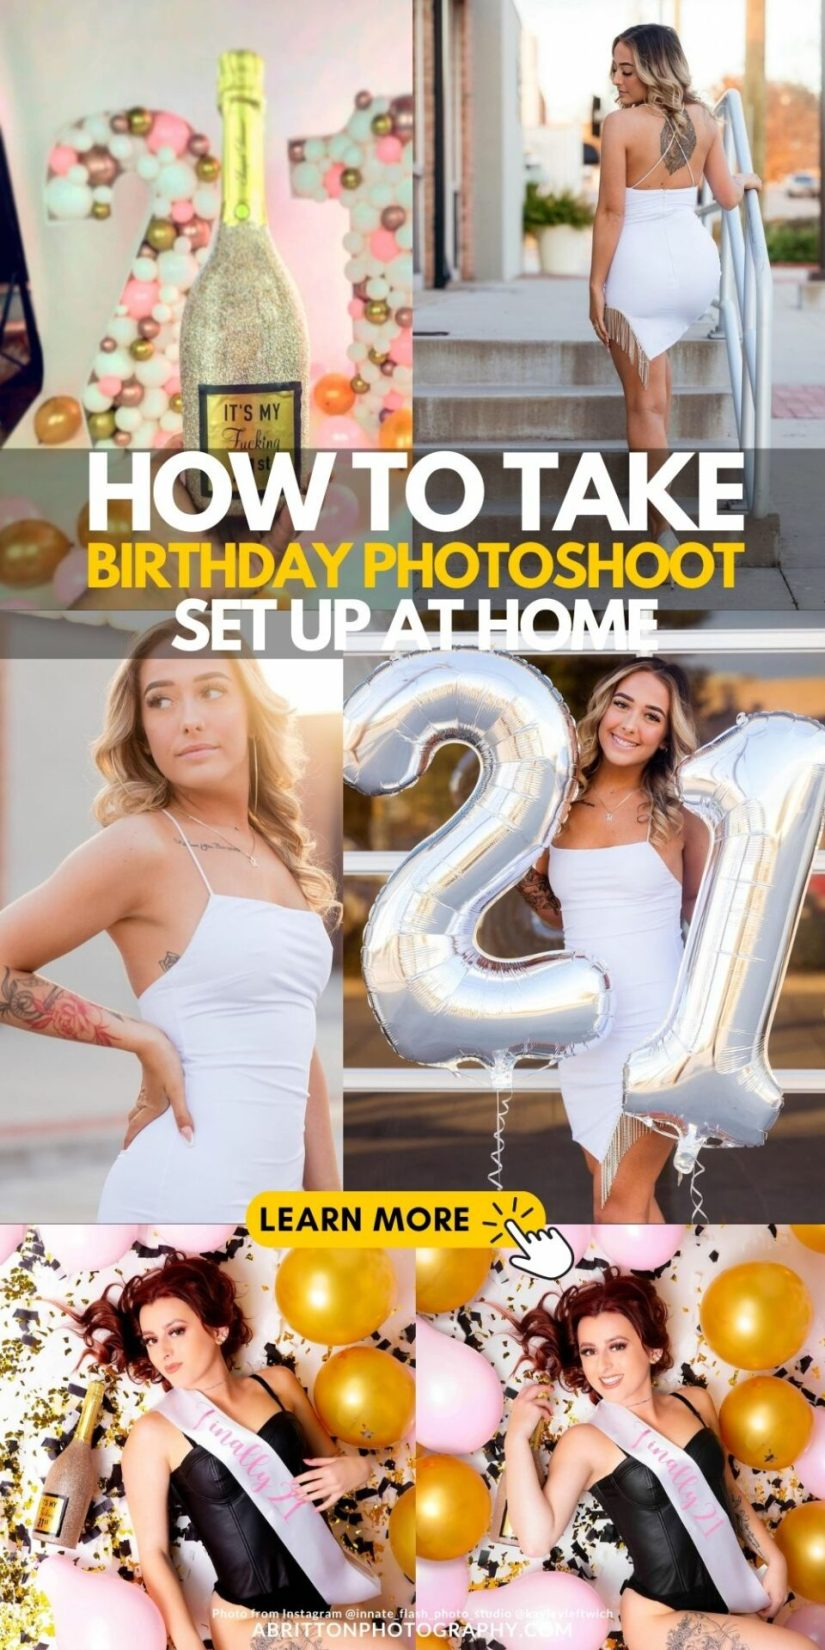 How to Set Up 21st birthday photoshoot picture ideas for girl at home